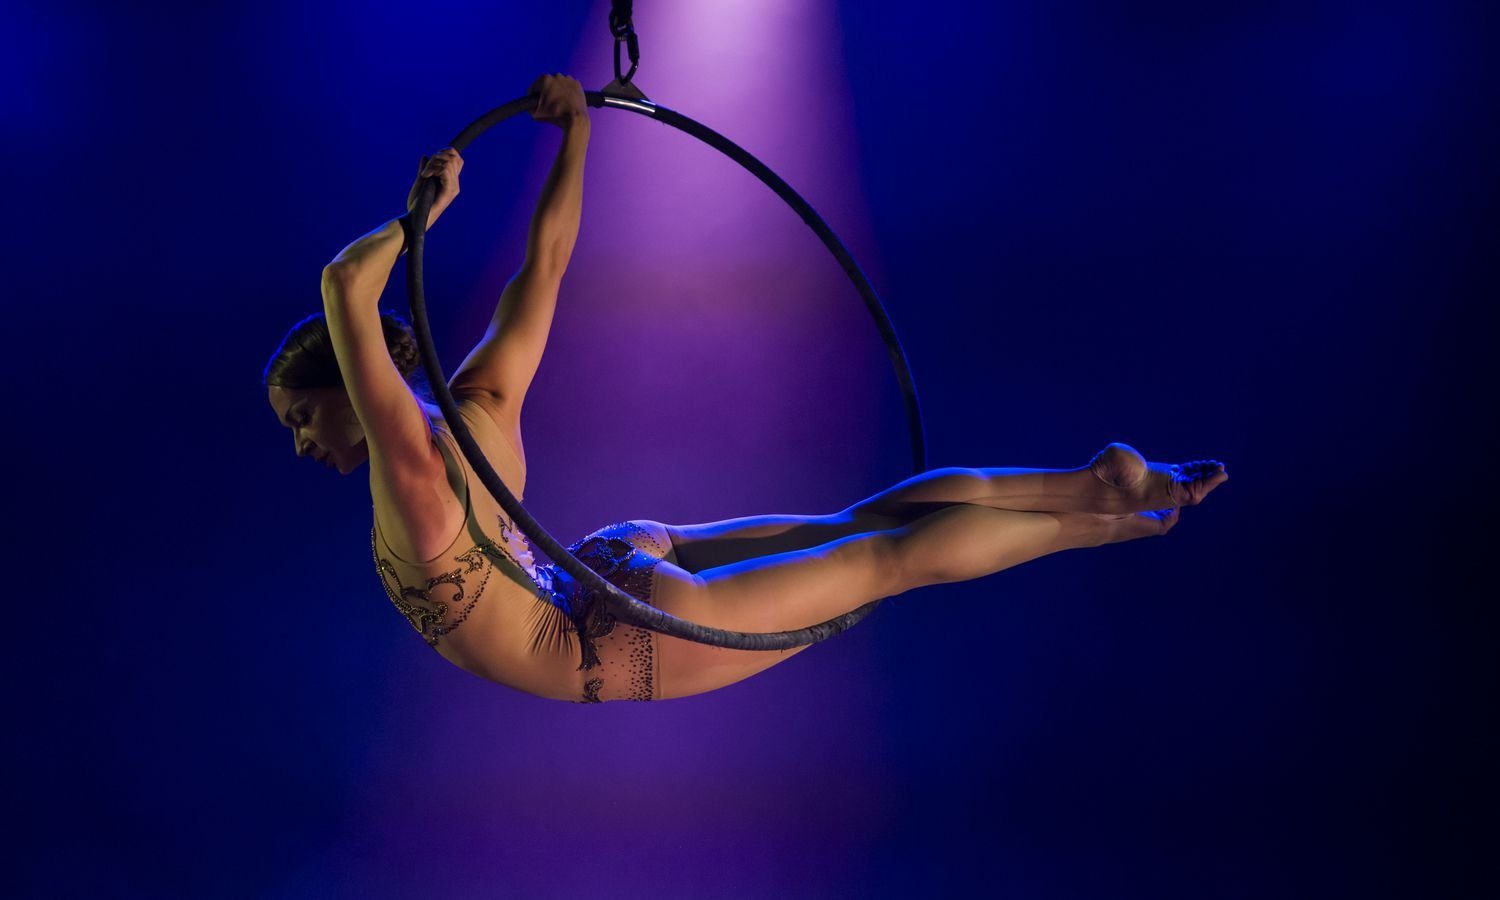 Up to 36% off tickets to 'Circus 1903' at Royal Festival Hall